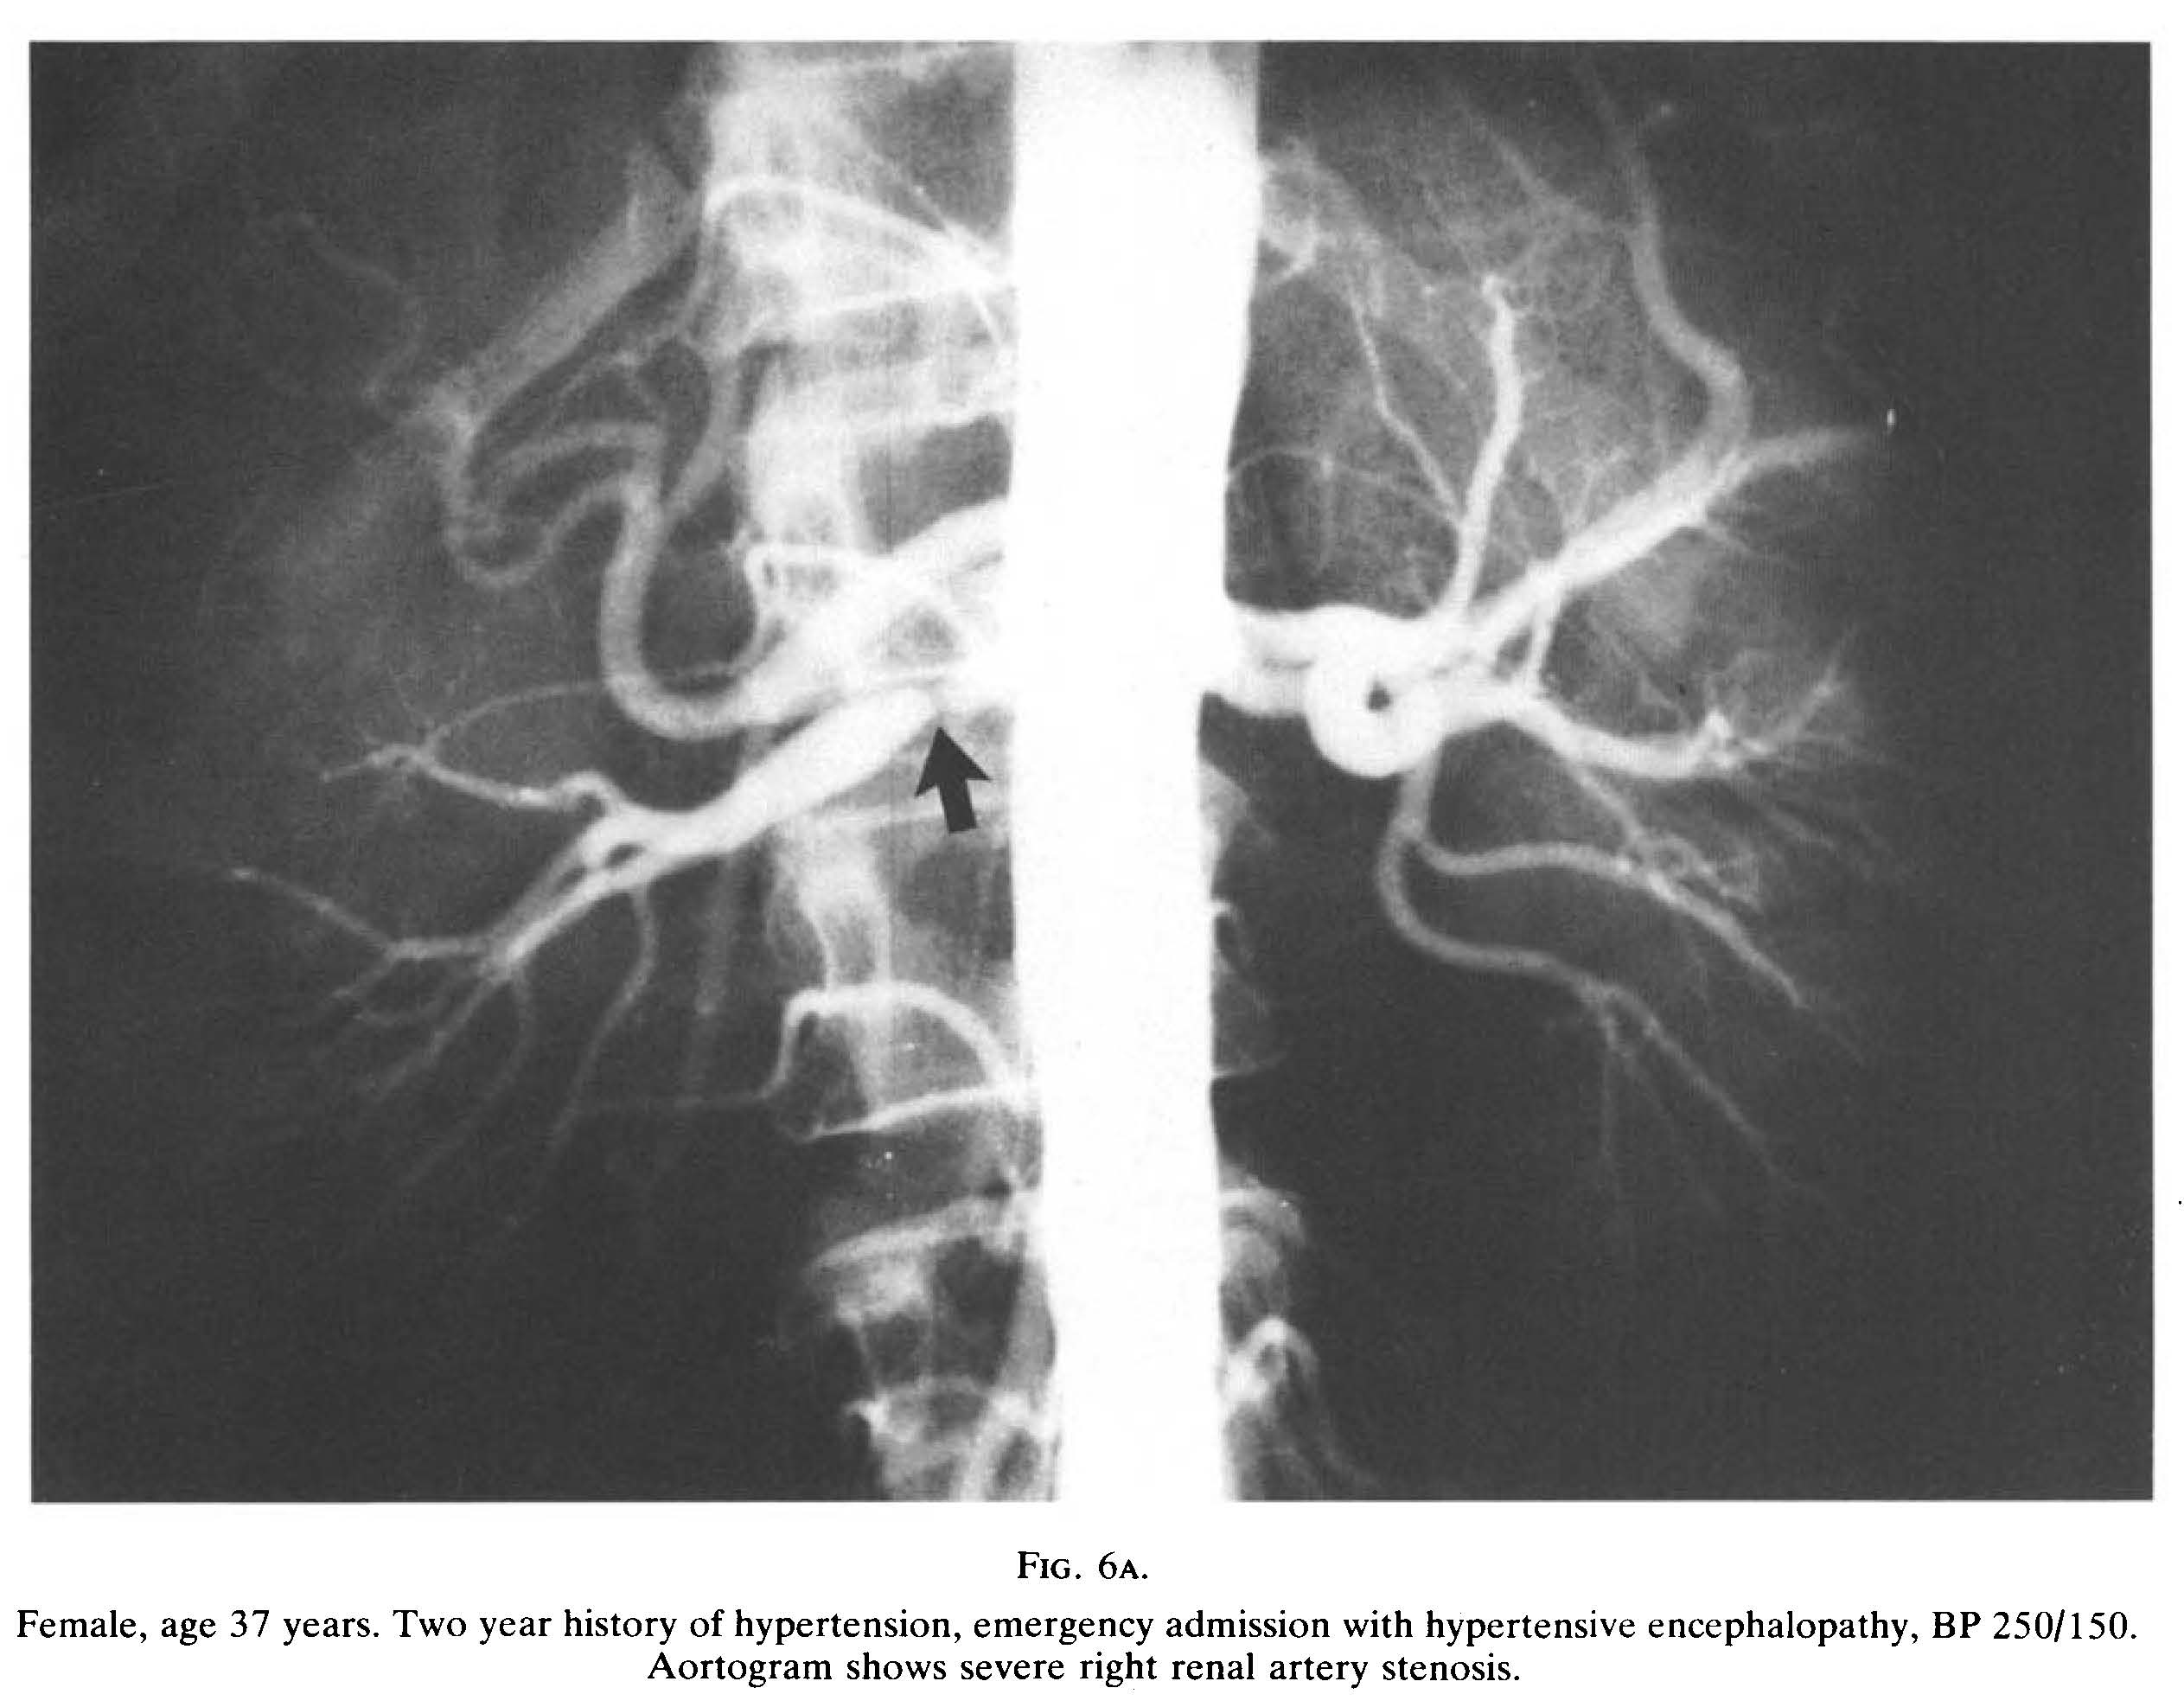 Image of renal artery stenosis